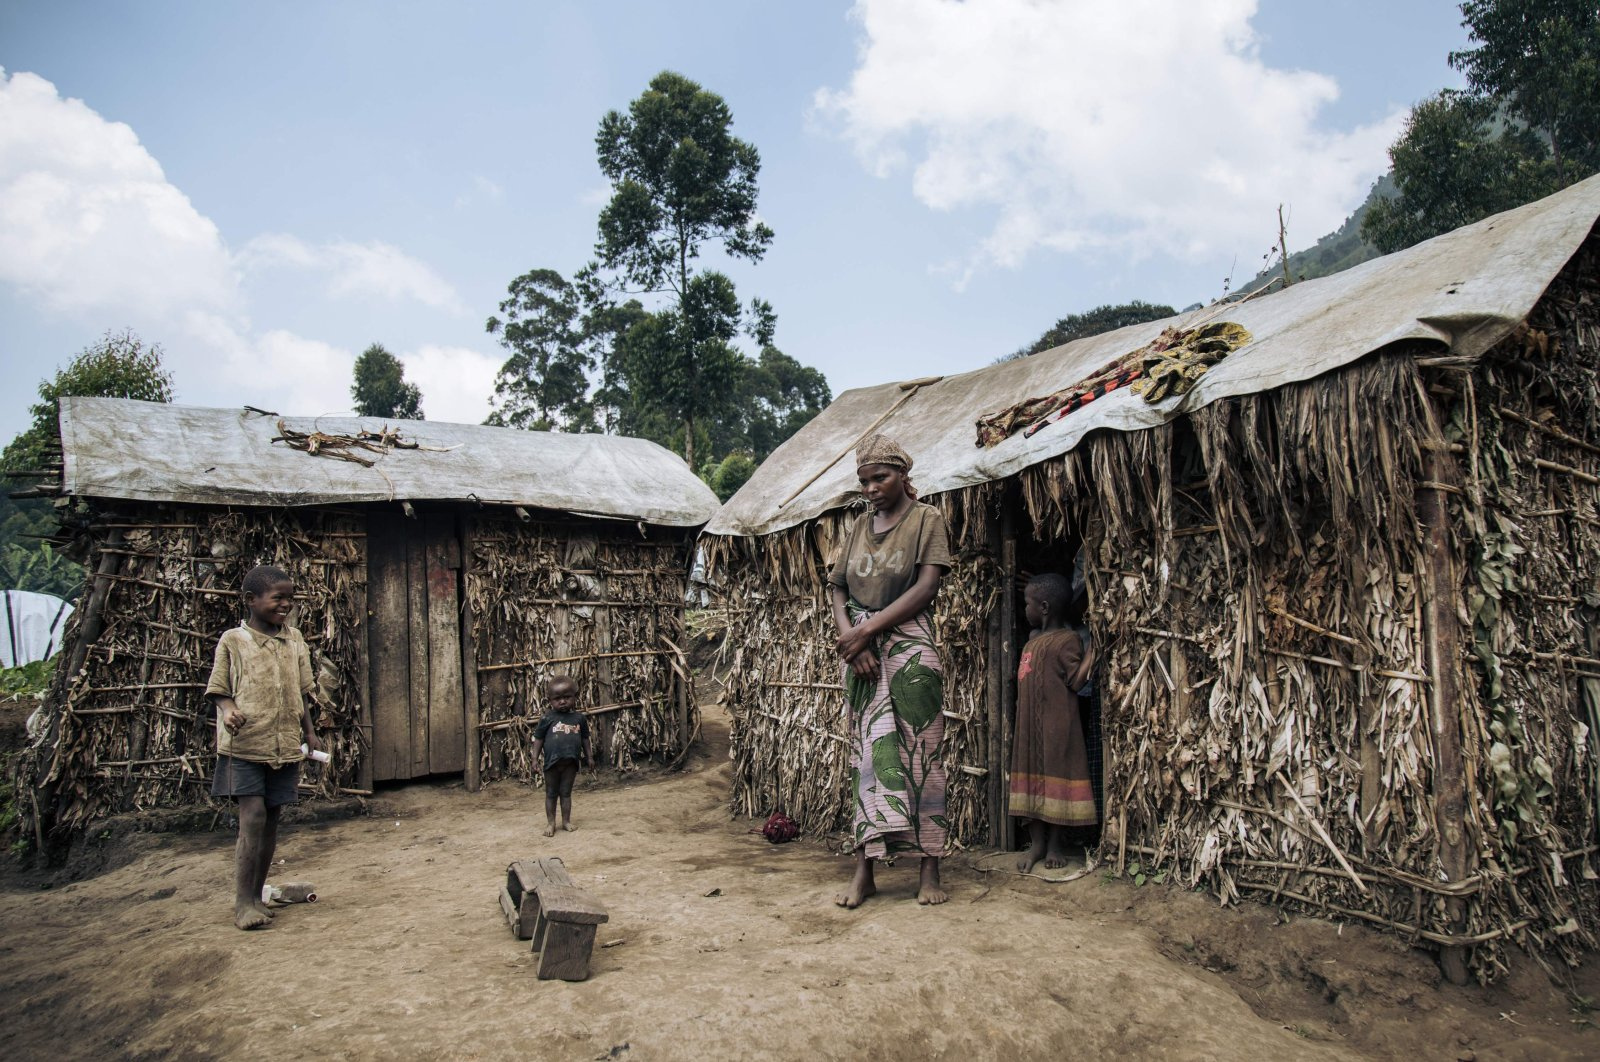 A woman stands next to a straw shelter with her children in Kalinga's site for internally displaced people in the Masisi Territory, the Democratic Republic of Congo, Jan. 15, 2020. (AFP Photo)